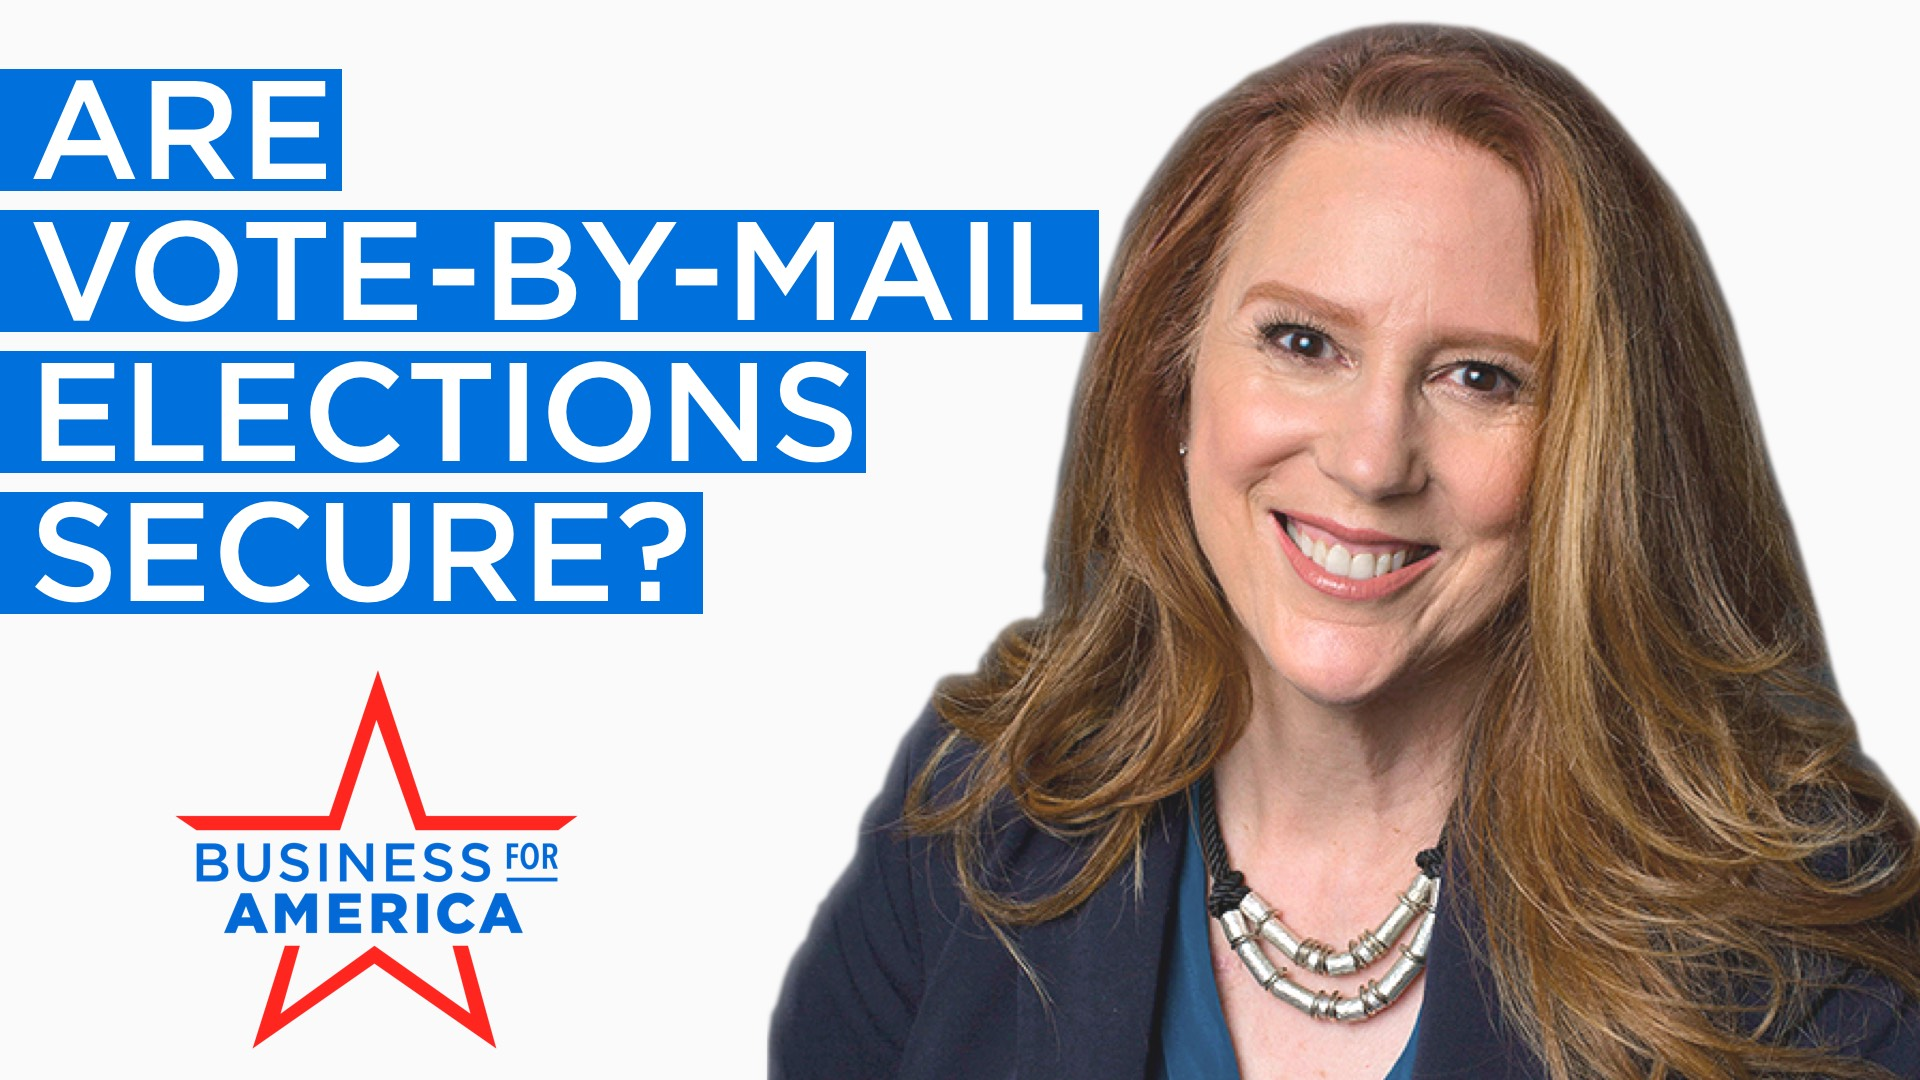 Are Vote by Mail Elections Secure? Interview with Secretary of State Kim Wyman (R-WA)